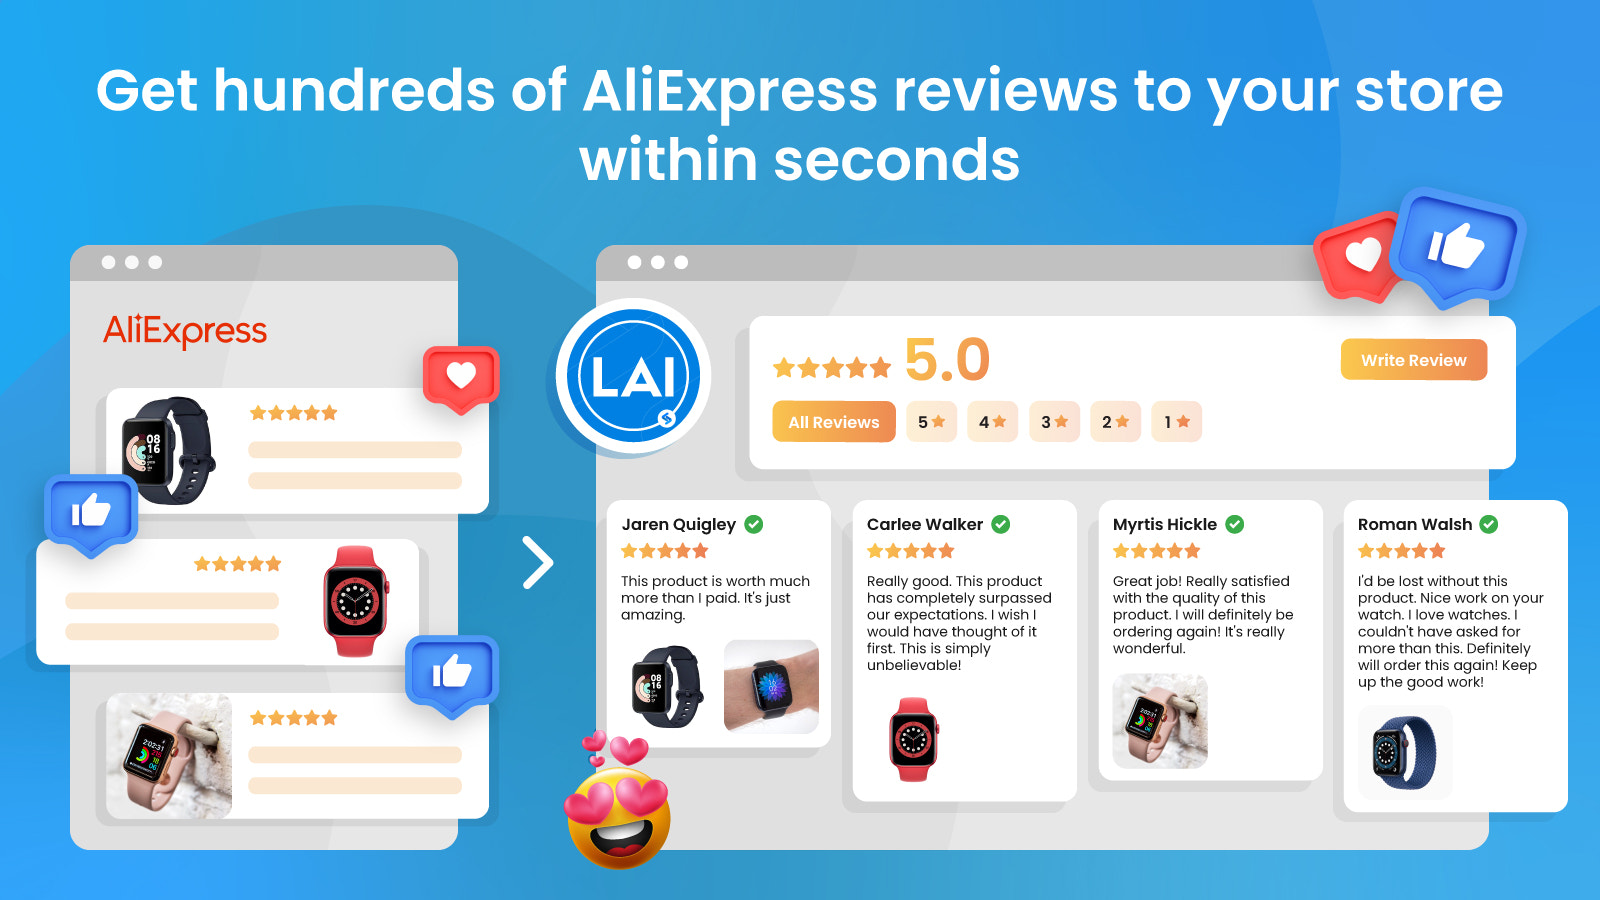 easy to import thousands of aliexpress reviews